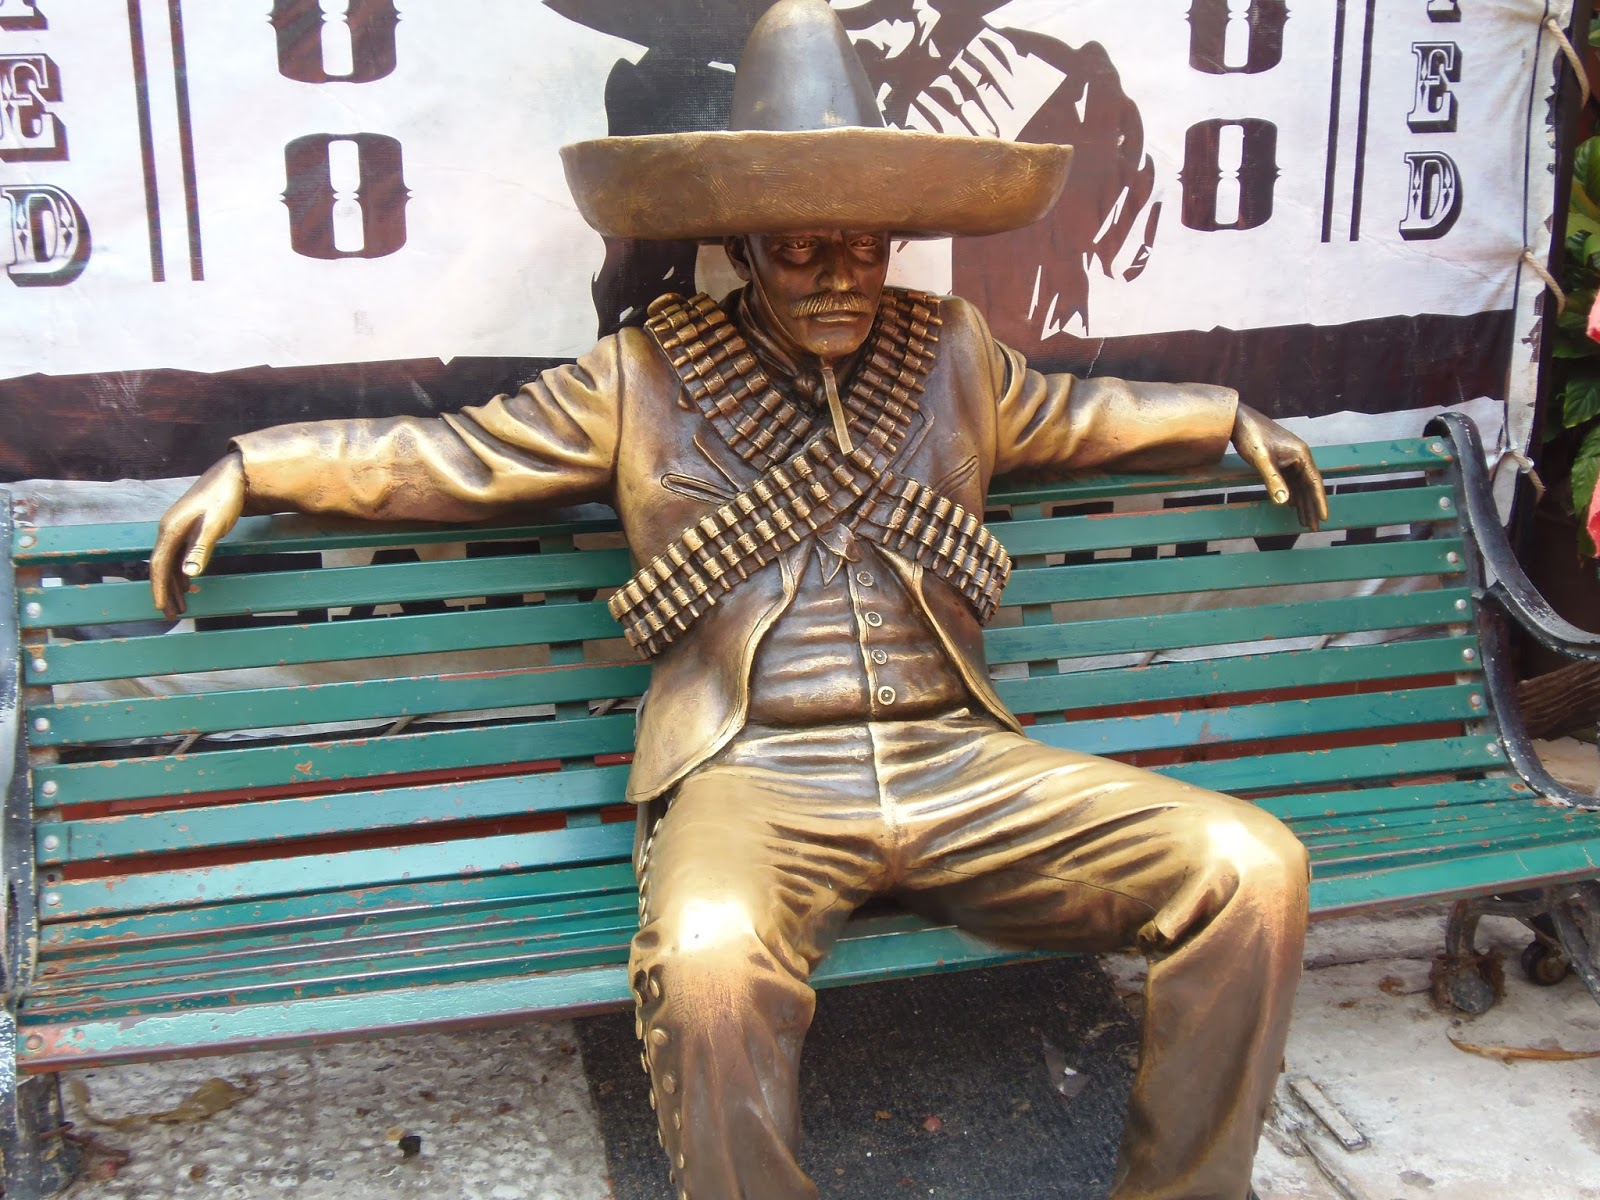 golden, metal, fifth avenue, 5th ave, mexico, playa del carmen, cancun, travel, traveling